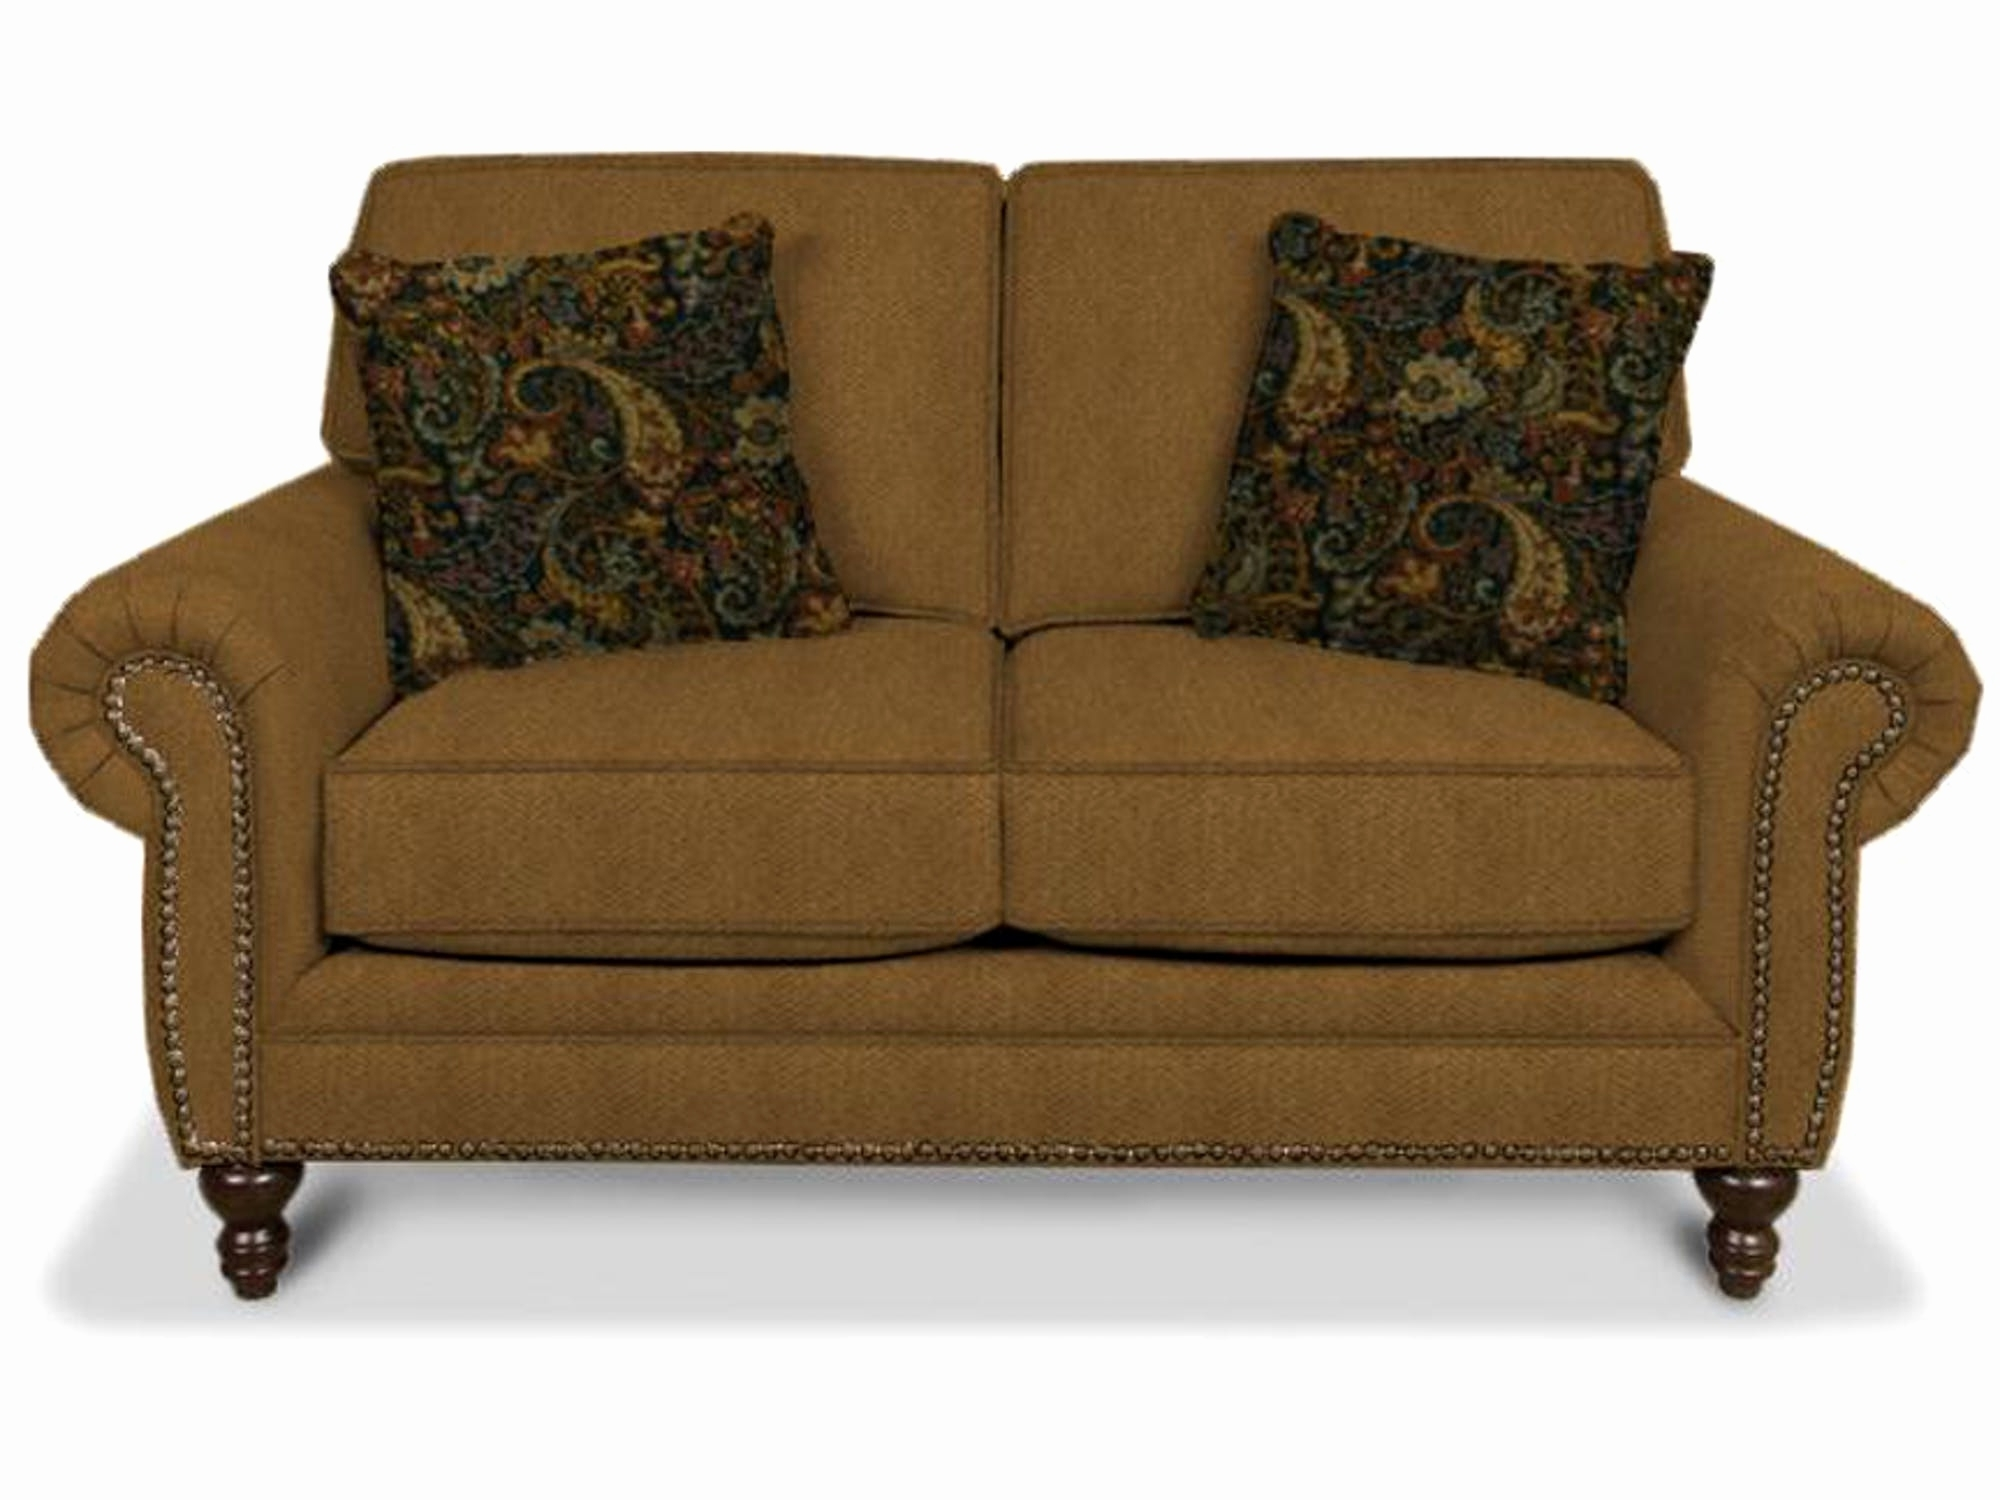 Fresh England Sectional Sofa 2018 – Couches And Sofas Ideas With Newest Dayton Ohio Sectional Sofas (View 8 of 20)